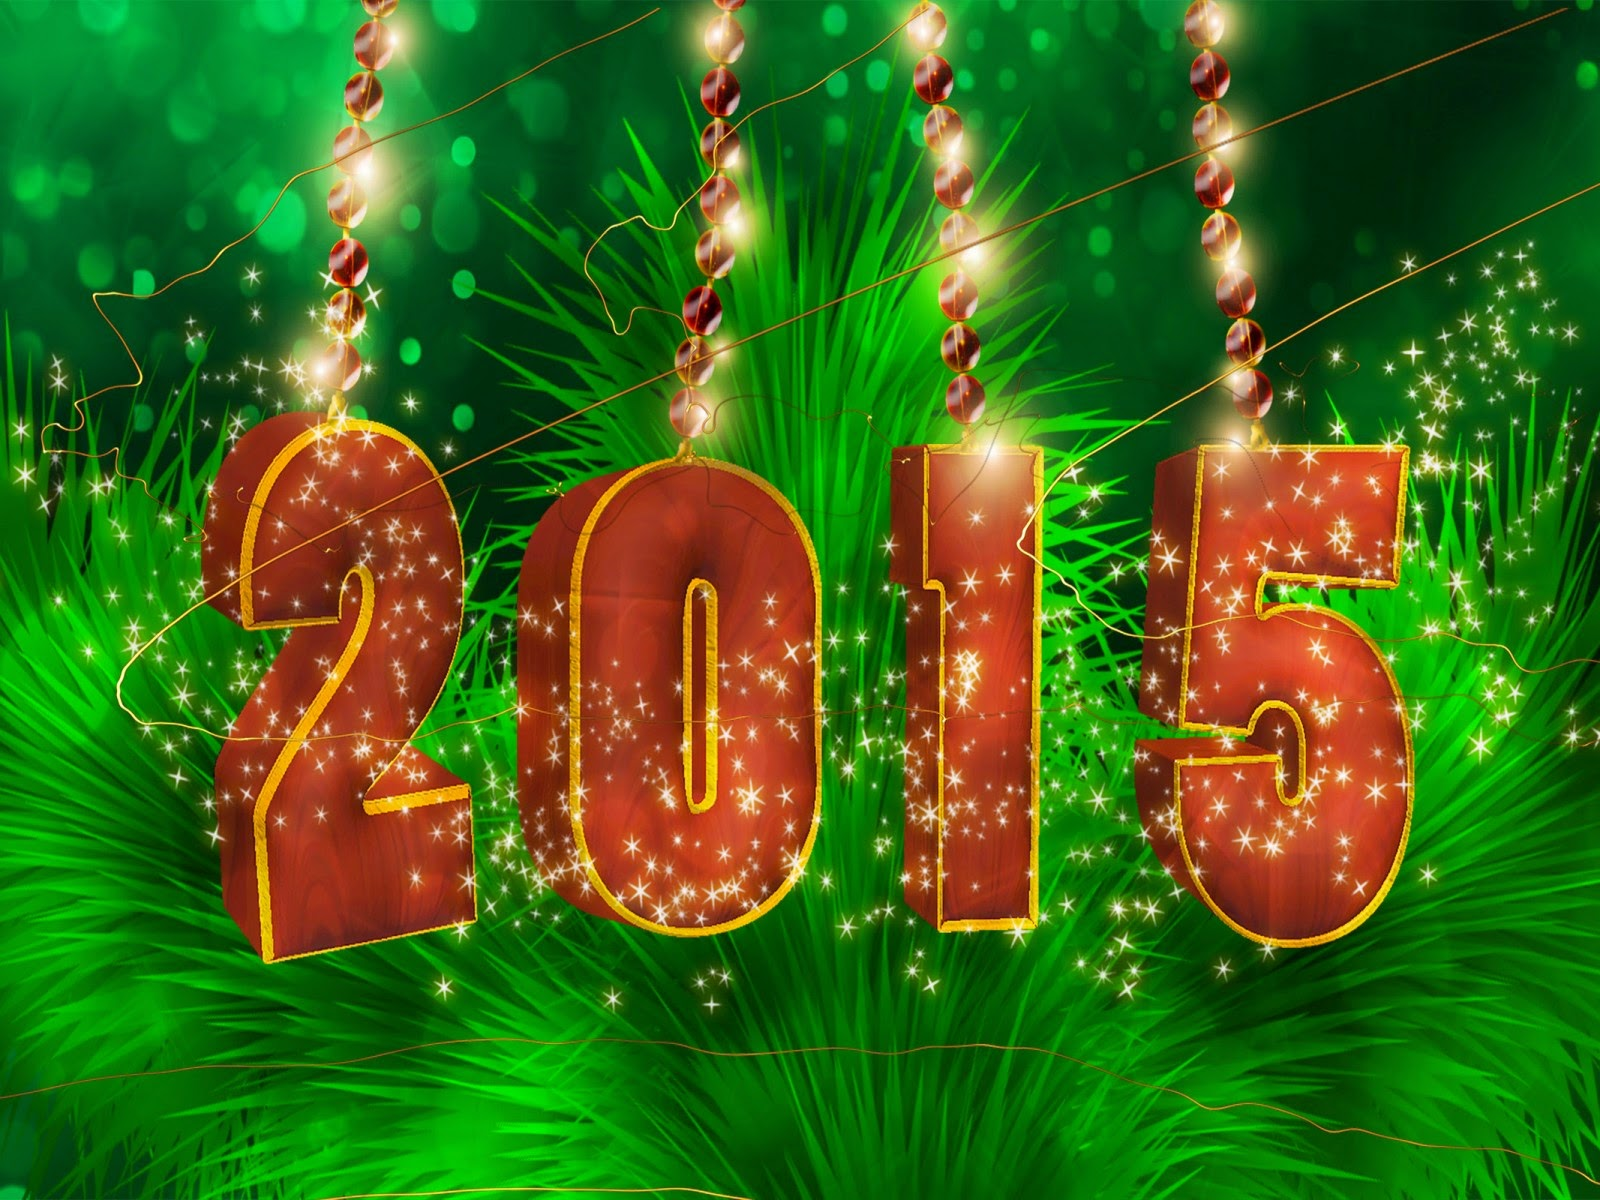 animated new year wallpaper 2015